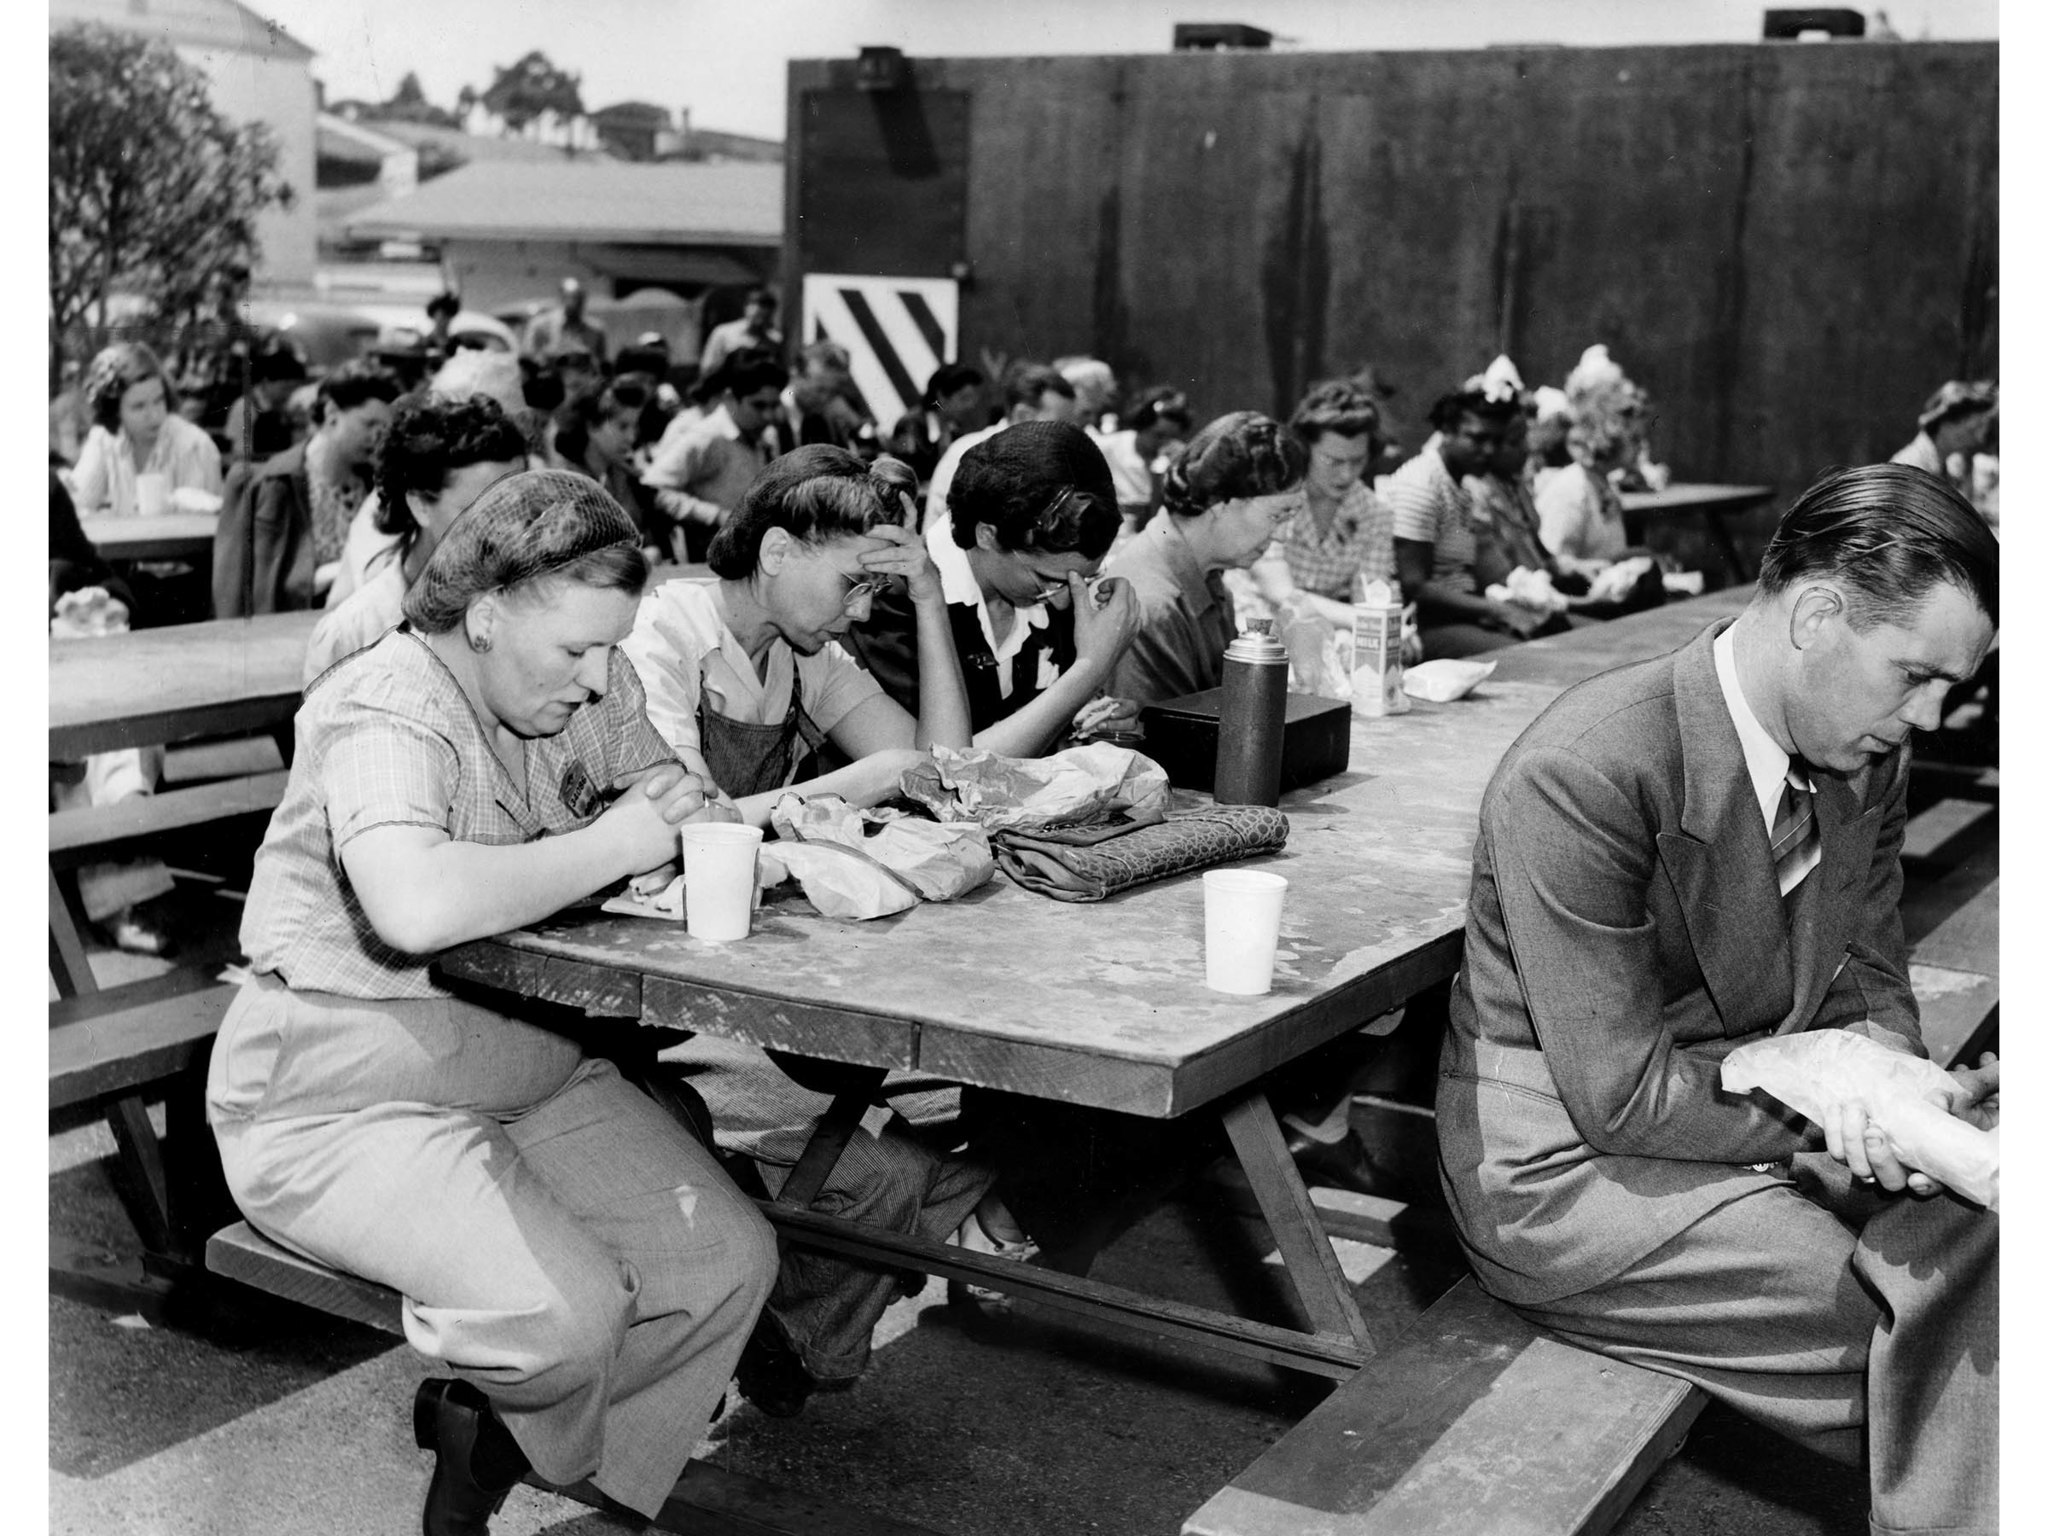 June 6, 1944: Douglas Aircraft Co. workers bow in silent prayer during lunch period. This photo was